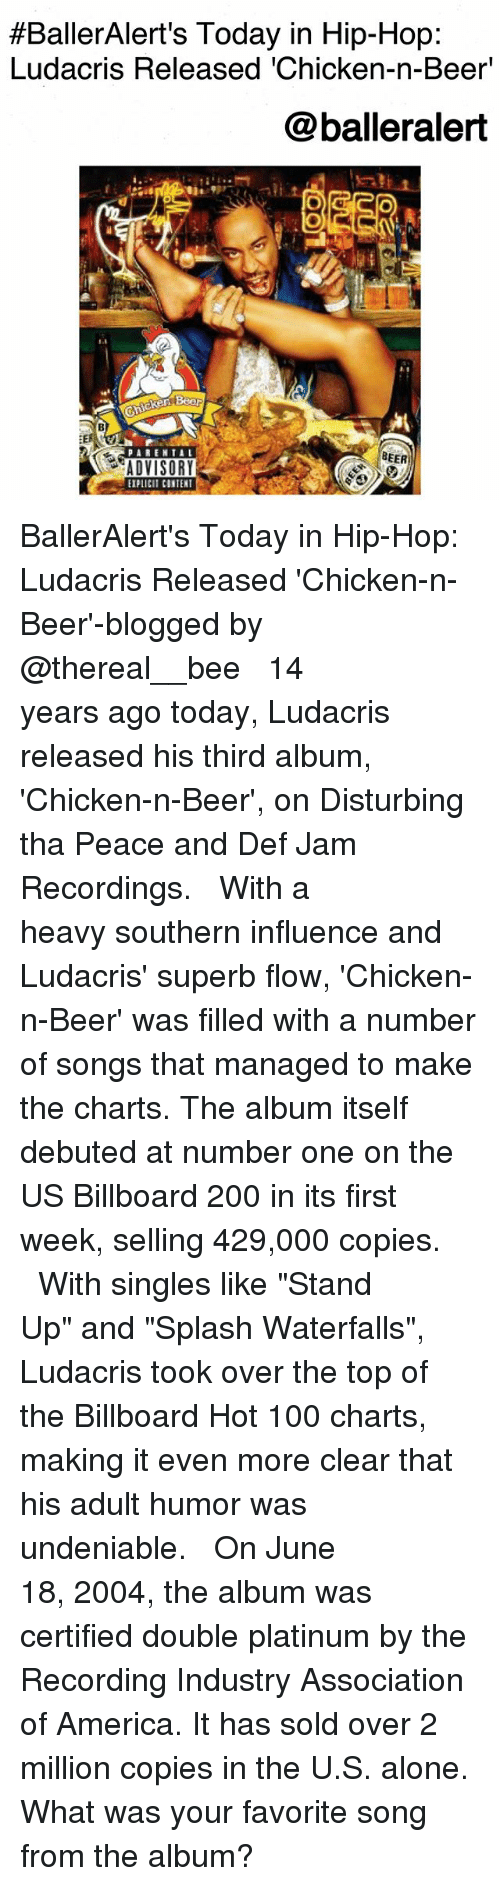 "Being Alone, America, and Anaconda:  #BallerAlert's Today in Hip-Hop:  Ludacris Released 'Chicken-n-Beer'  @balleralert  BEER  ADVISORY  EIPLICIT CONTENT BallerAlert's Today in Hip-Hop: Ludacris Released 'Chicken-n-Beer'-blogged by @thereal__bee ⠀⠀⠀⠀⠀⠀⠀⠀⠀ ⠀⠀ 14 years ago today, Ludacris released his third album, 'Chicken-n-Beer', on Disturbing tha Peace and Def Jam Recordings. ⠀⠀⠀⠀⠀⠀⠀⠀⠀ ⠀⠀ With a heavy southern influence and Ludacris' superb flow, 'Chicken-n-Beer' was filled with a number of songs that managed to make the charts. The album itself debuted at number one on the US Billboard 200 in its first week, selling 429,000 copies. ⠀⠀⠀⠀⠀⠀⠀⠀⠀ ⠀⠀ With singles like ""Stand Up"" and ""Splash Waterfalls"", Ludacris took over the top of the Billboard Hot 100 charts, making it even more clear that his adult humor was undeniable. ⠀⠀⠀⠀⠀⠀⠀⠀⠀ ⠀⠀ On June 18, 2004, the album was certified double platinum by the Recording Industry Association of America. It has sold over 2 million copies in the U.S. alone. What was your favorite song from the album?"